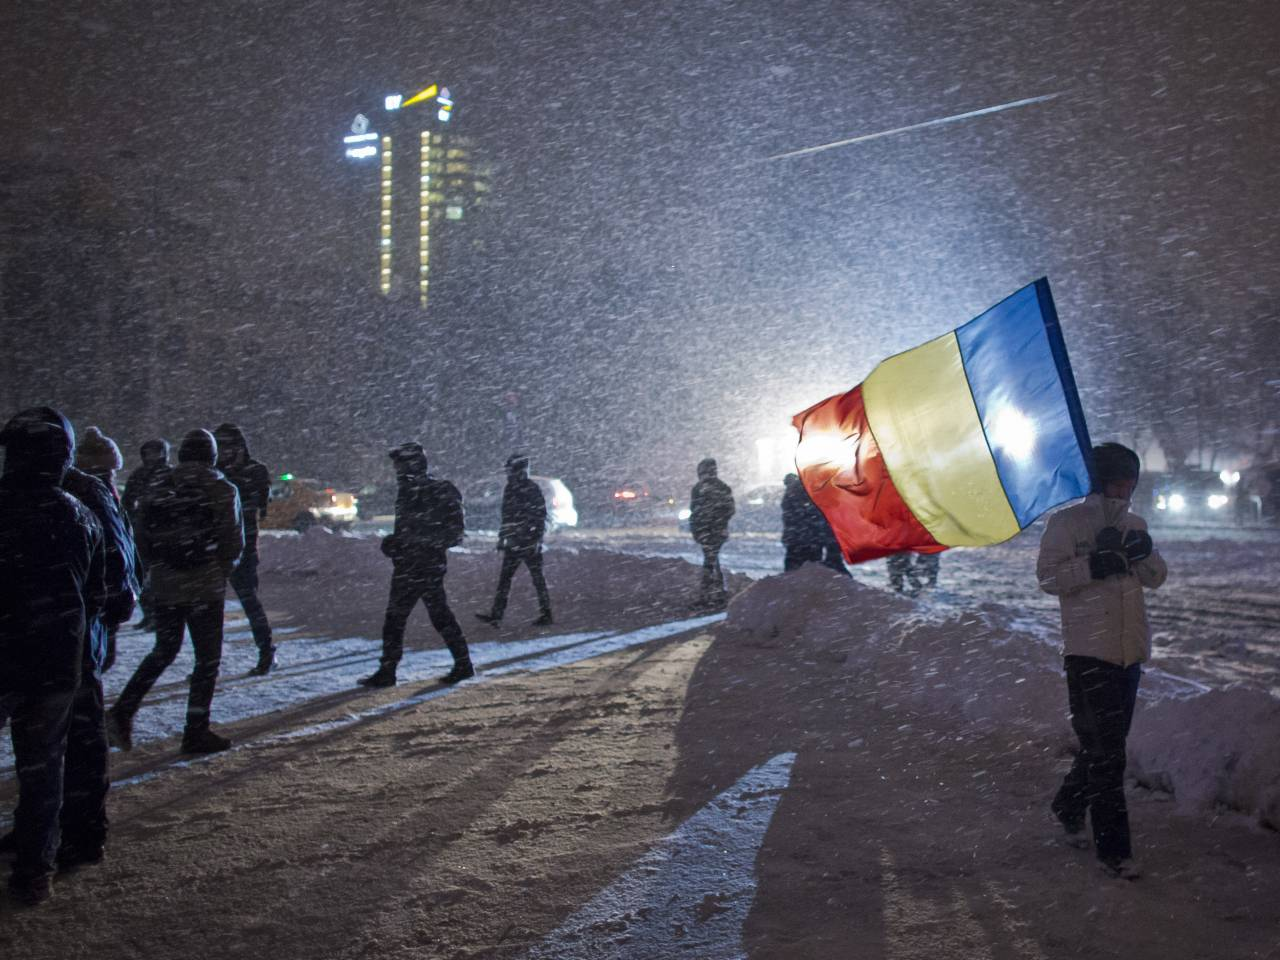 Romania justice minister resigns over anti-government protests